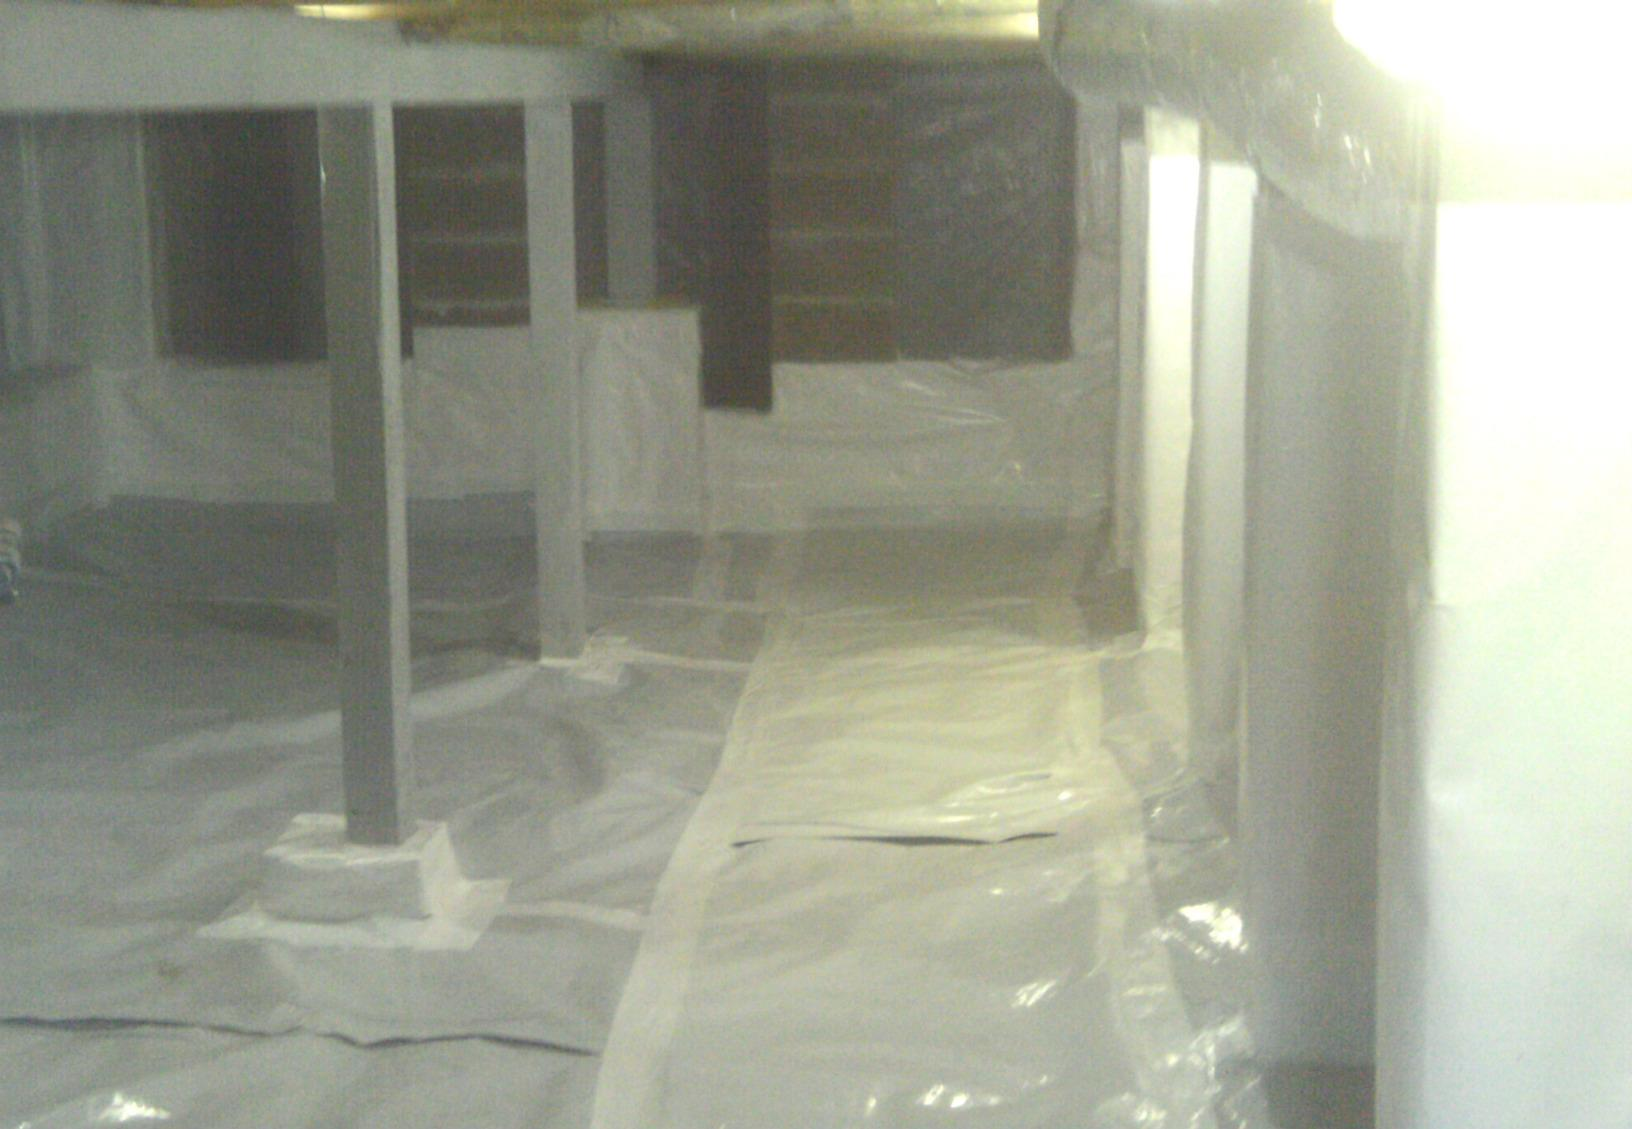 CleanSpace liner has an antimicrobial additive designed to resist mold growth on the liner.